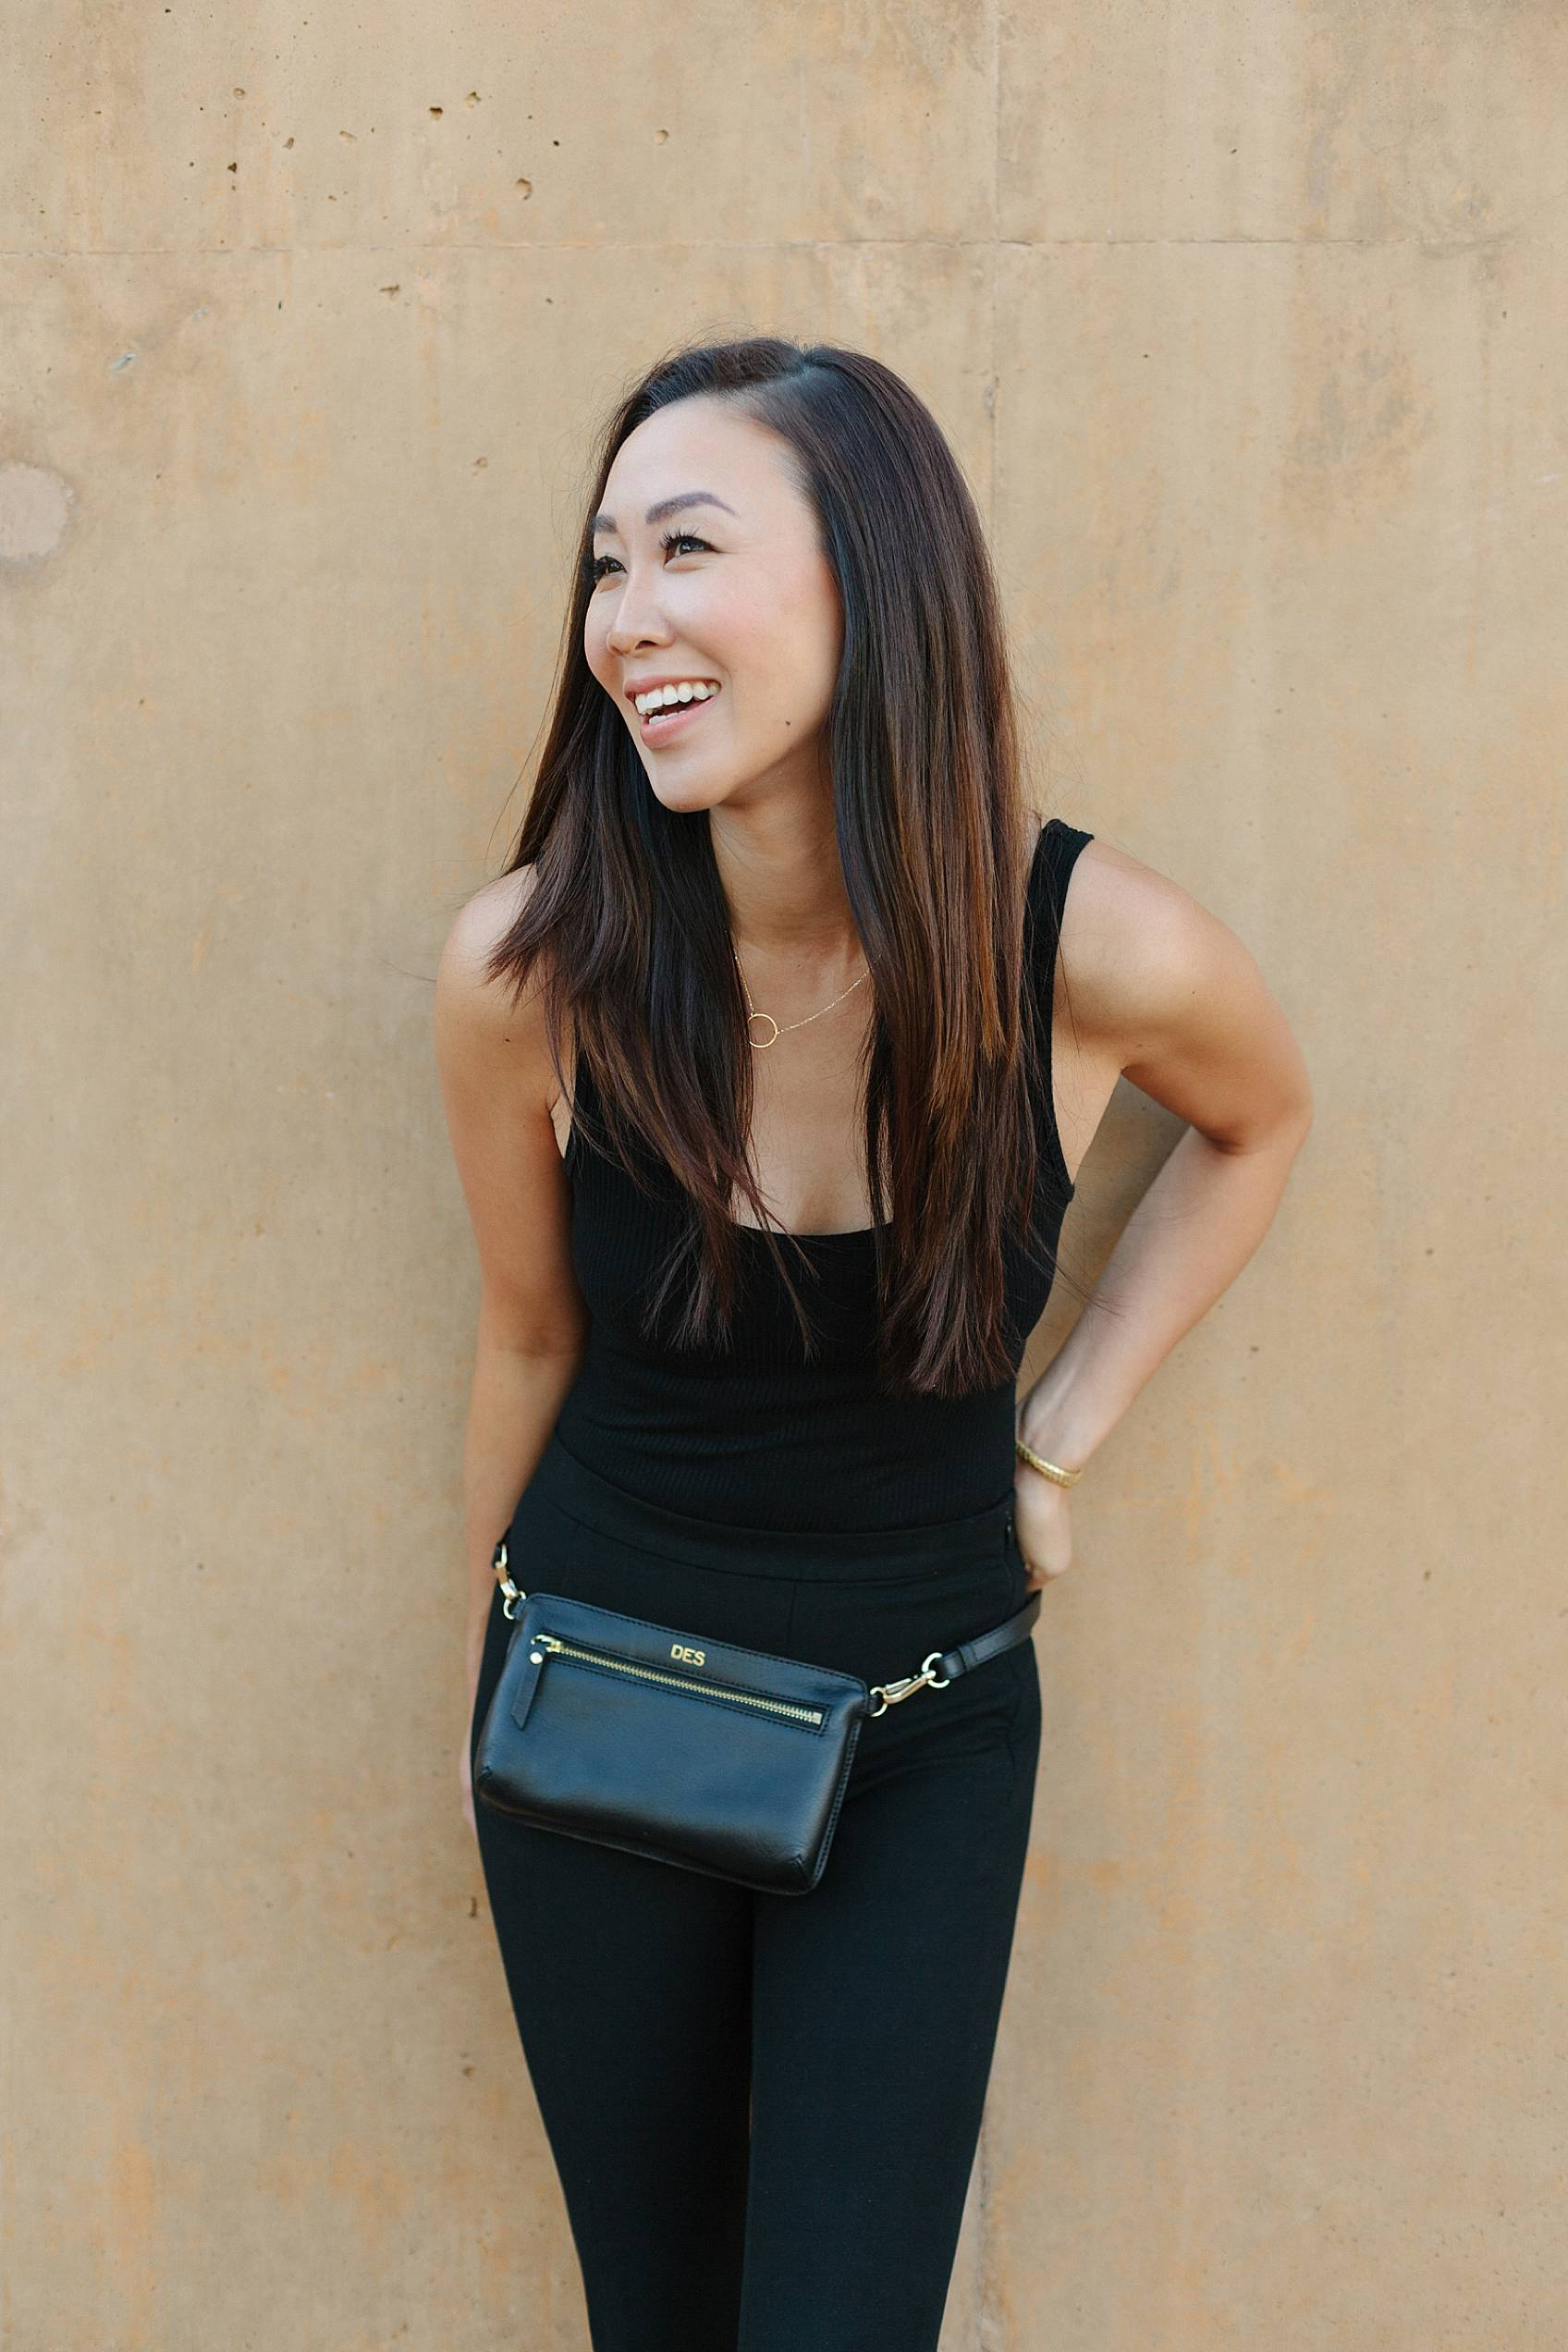 black leather fanny pack outfit wearing all black outfit ideas